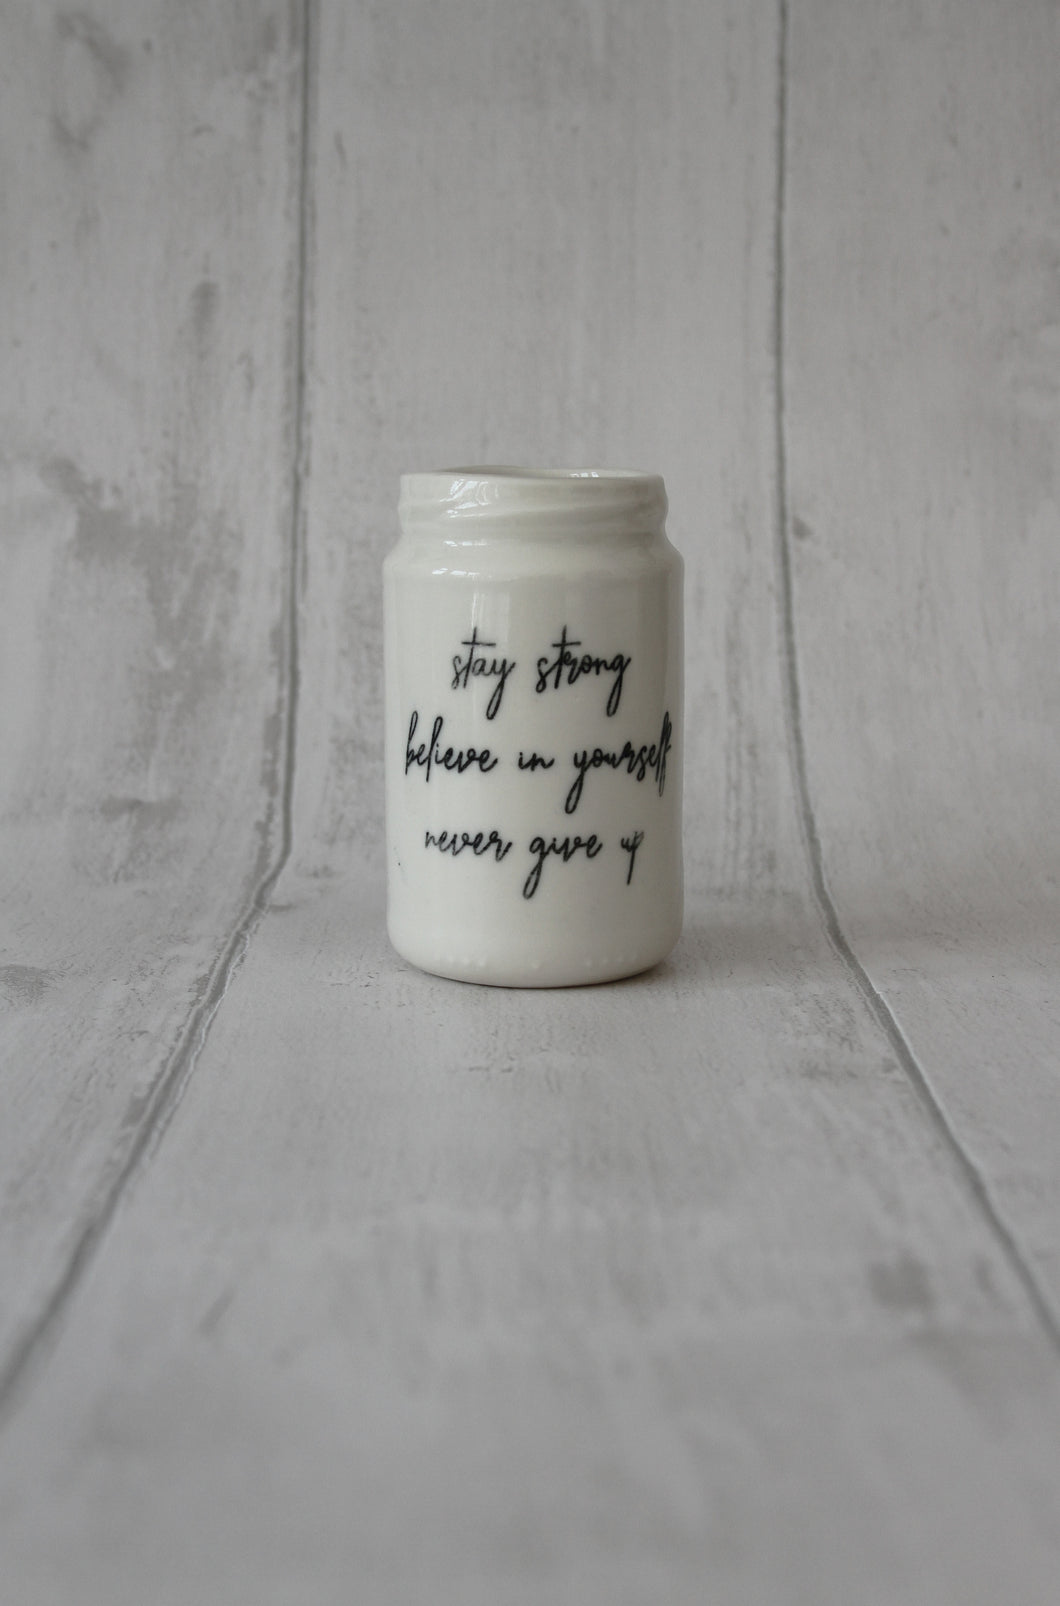 Large Porcelain Jar - Stay strong believe in yourself never give up